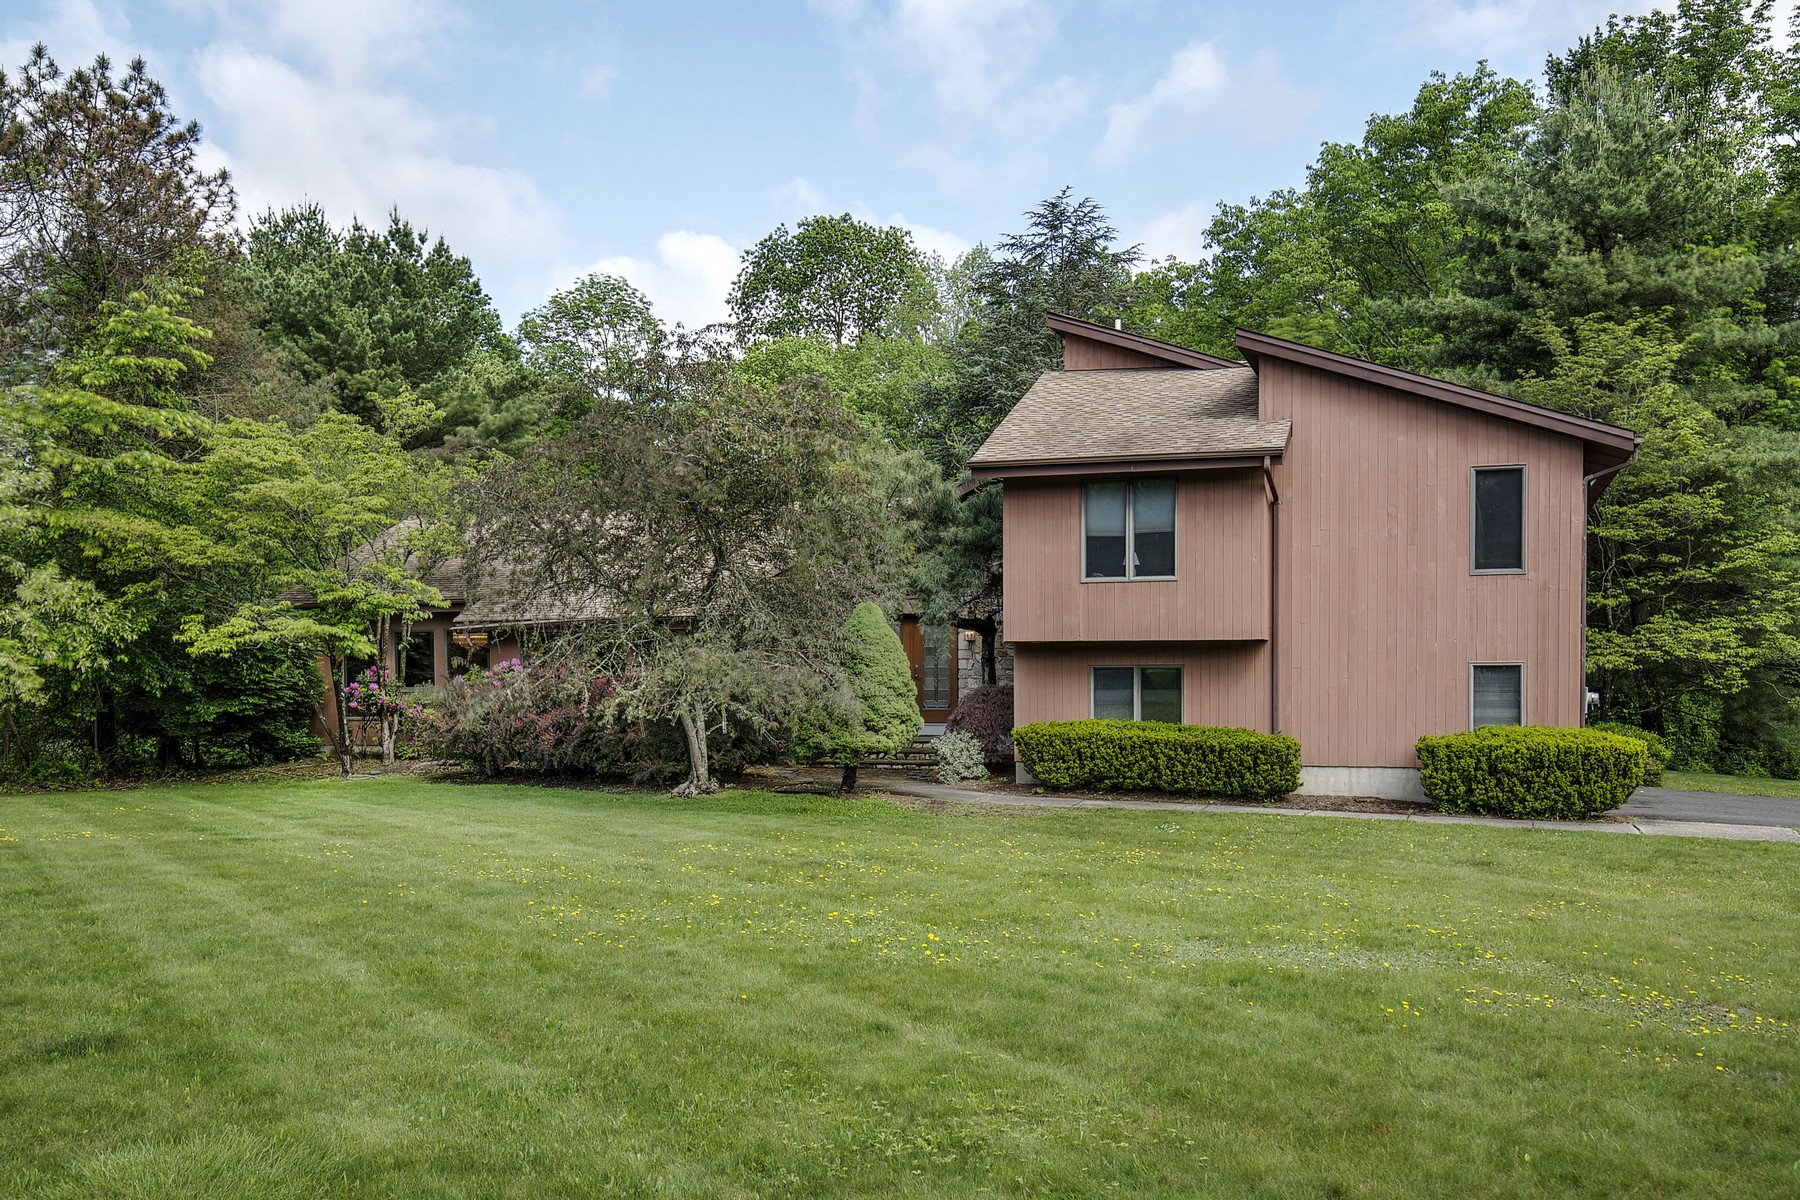 Single Family Home for Sale at Private Contemporary 17 Chesterbrook Road Chester, New Jersey 07930 United States